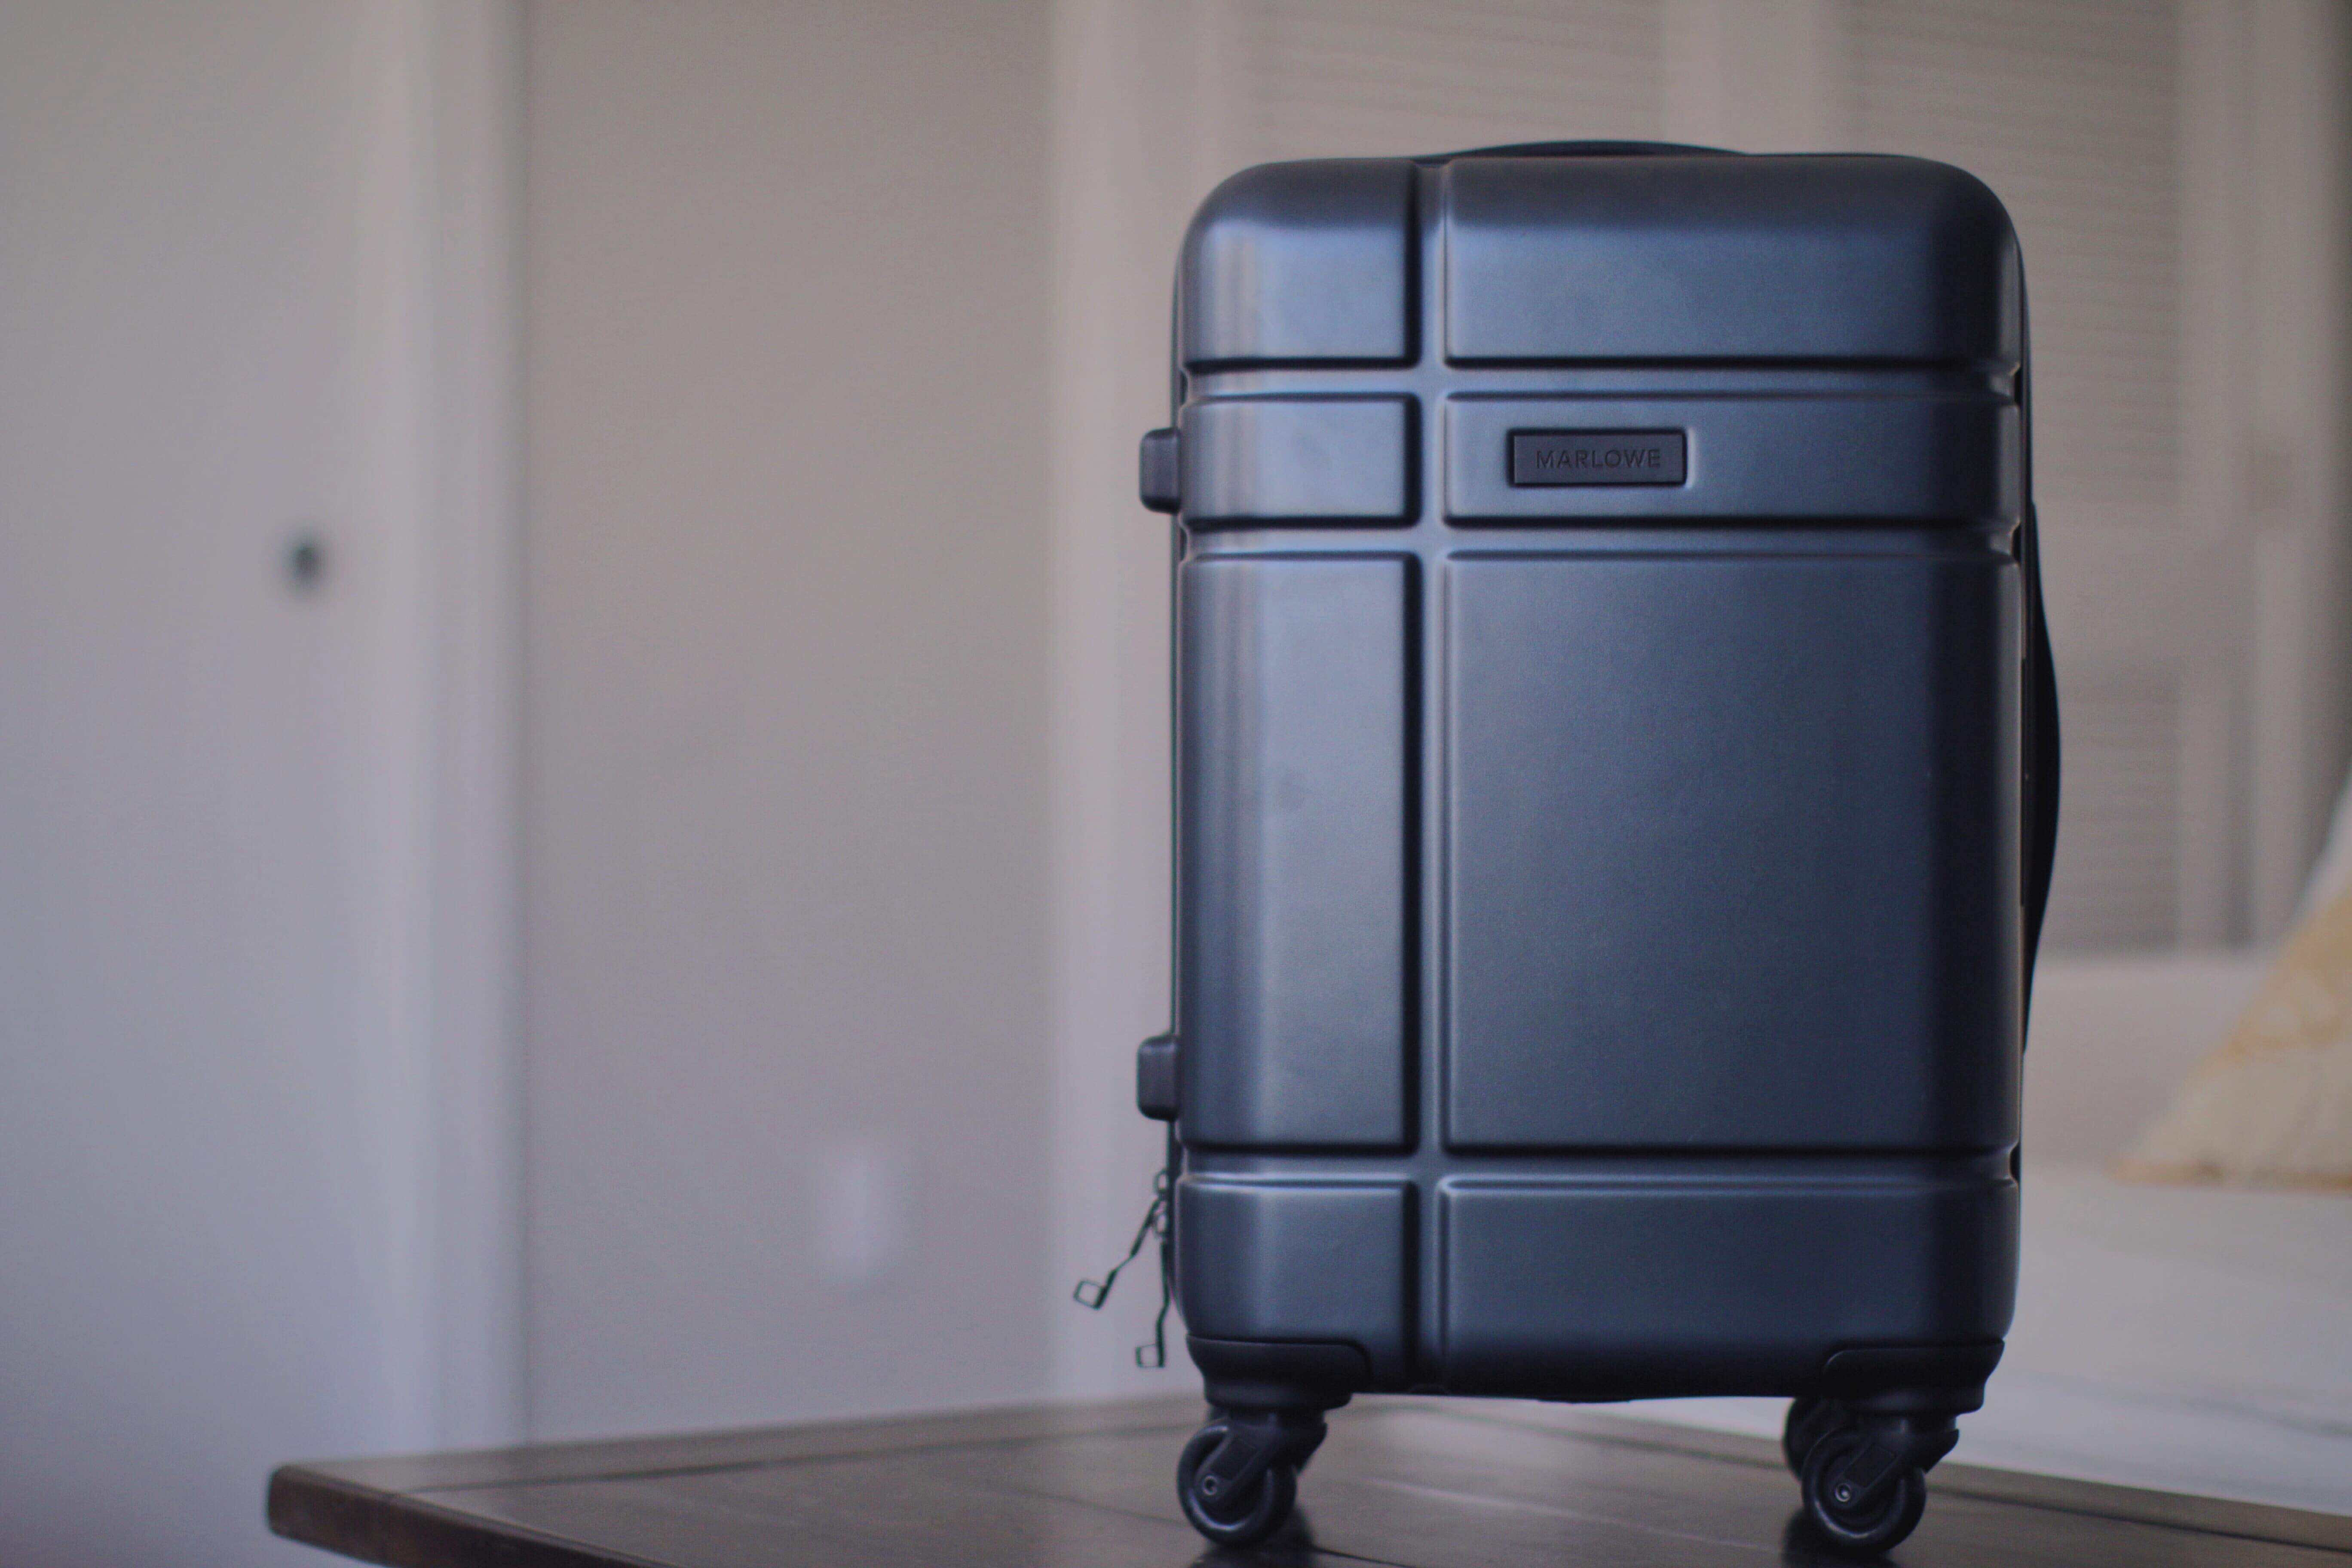 Marlowe Carry-On Suitcase Image